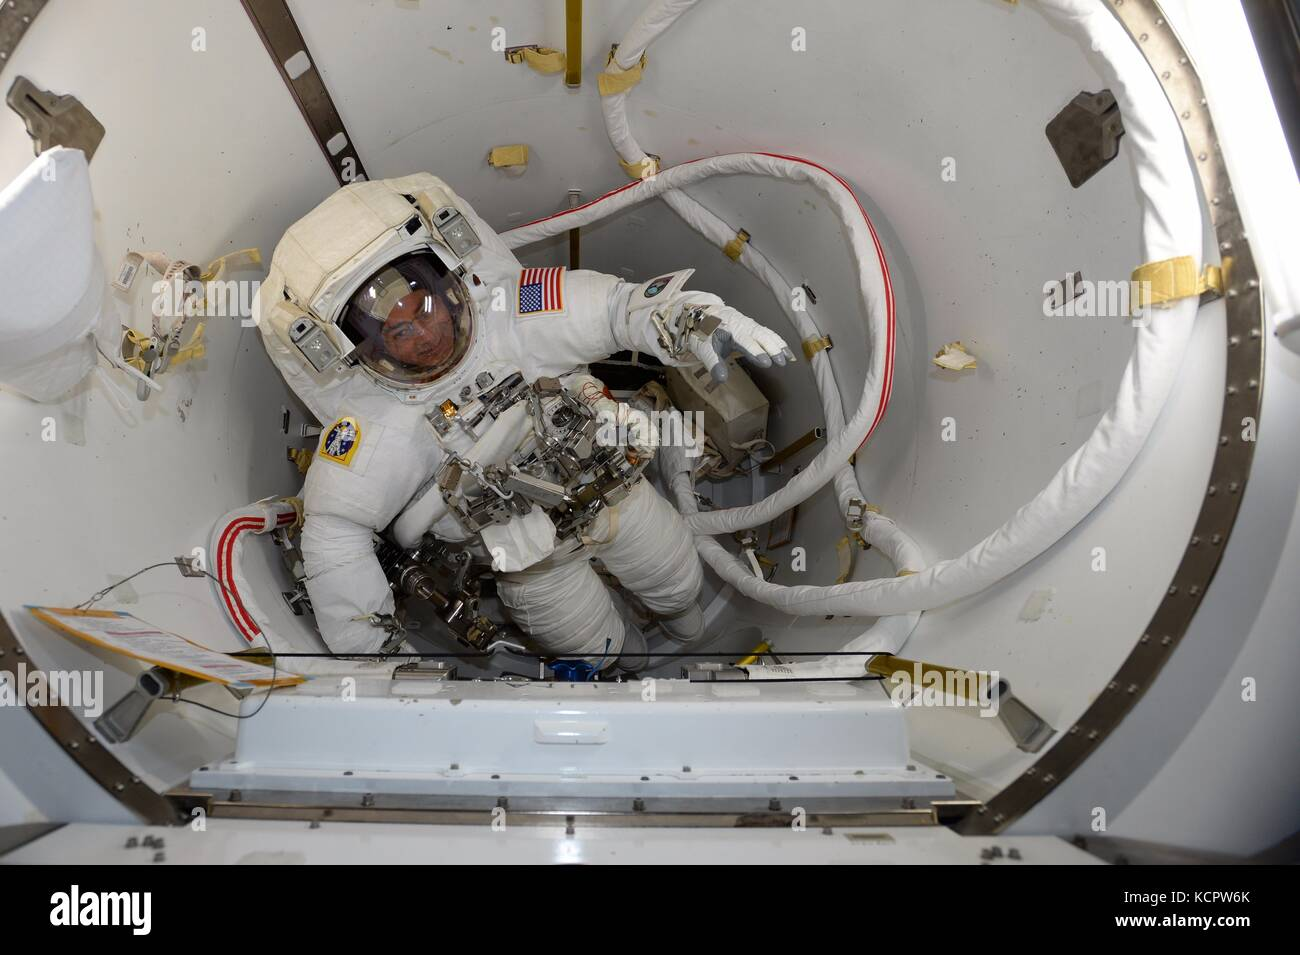 International Space Station Expedition 53 crew member Mark Vande Hei prepares for his spacewalk to install a new - Stock Image